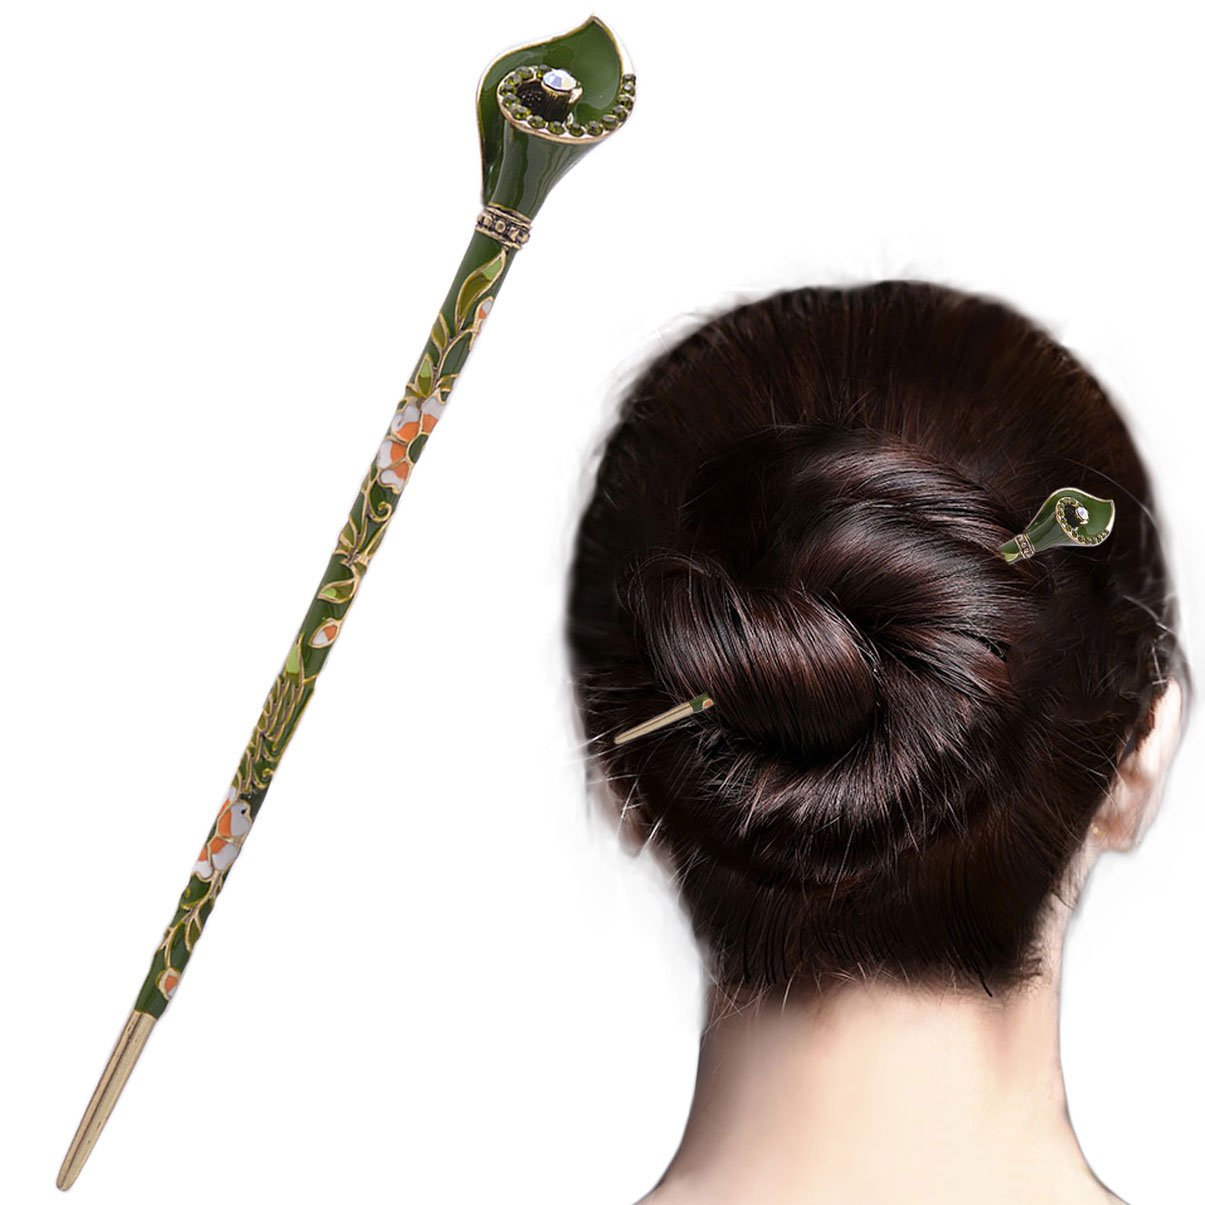 Amazon.com : Chinese Traditional Elegant Hairpins Hair Pin Stick Fashion  Long Hair Accessory Decorative for Women Girls (A-Green) : Beauty